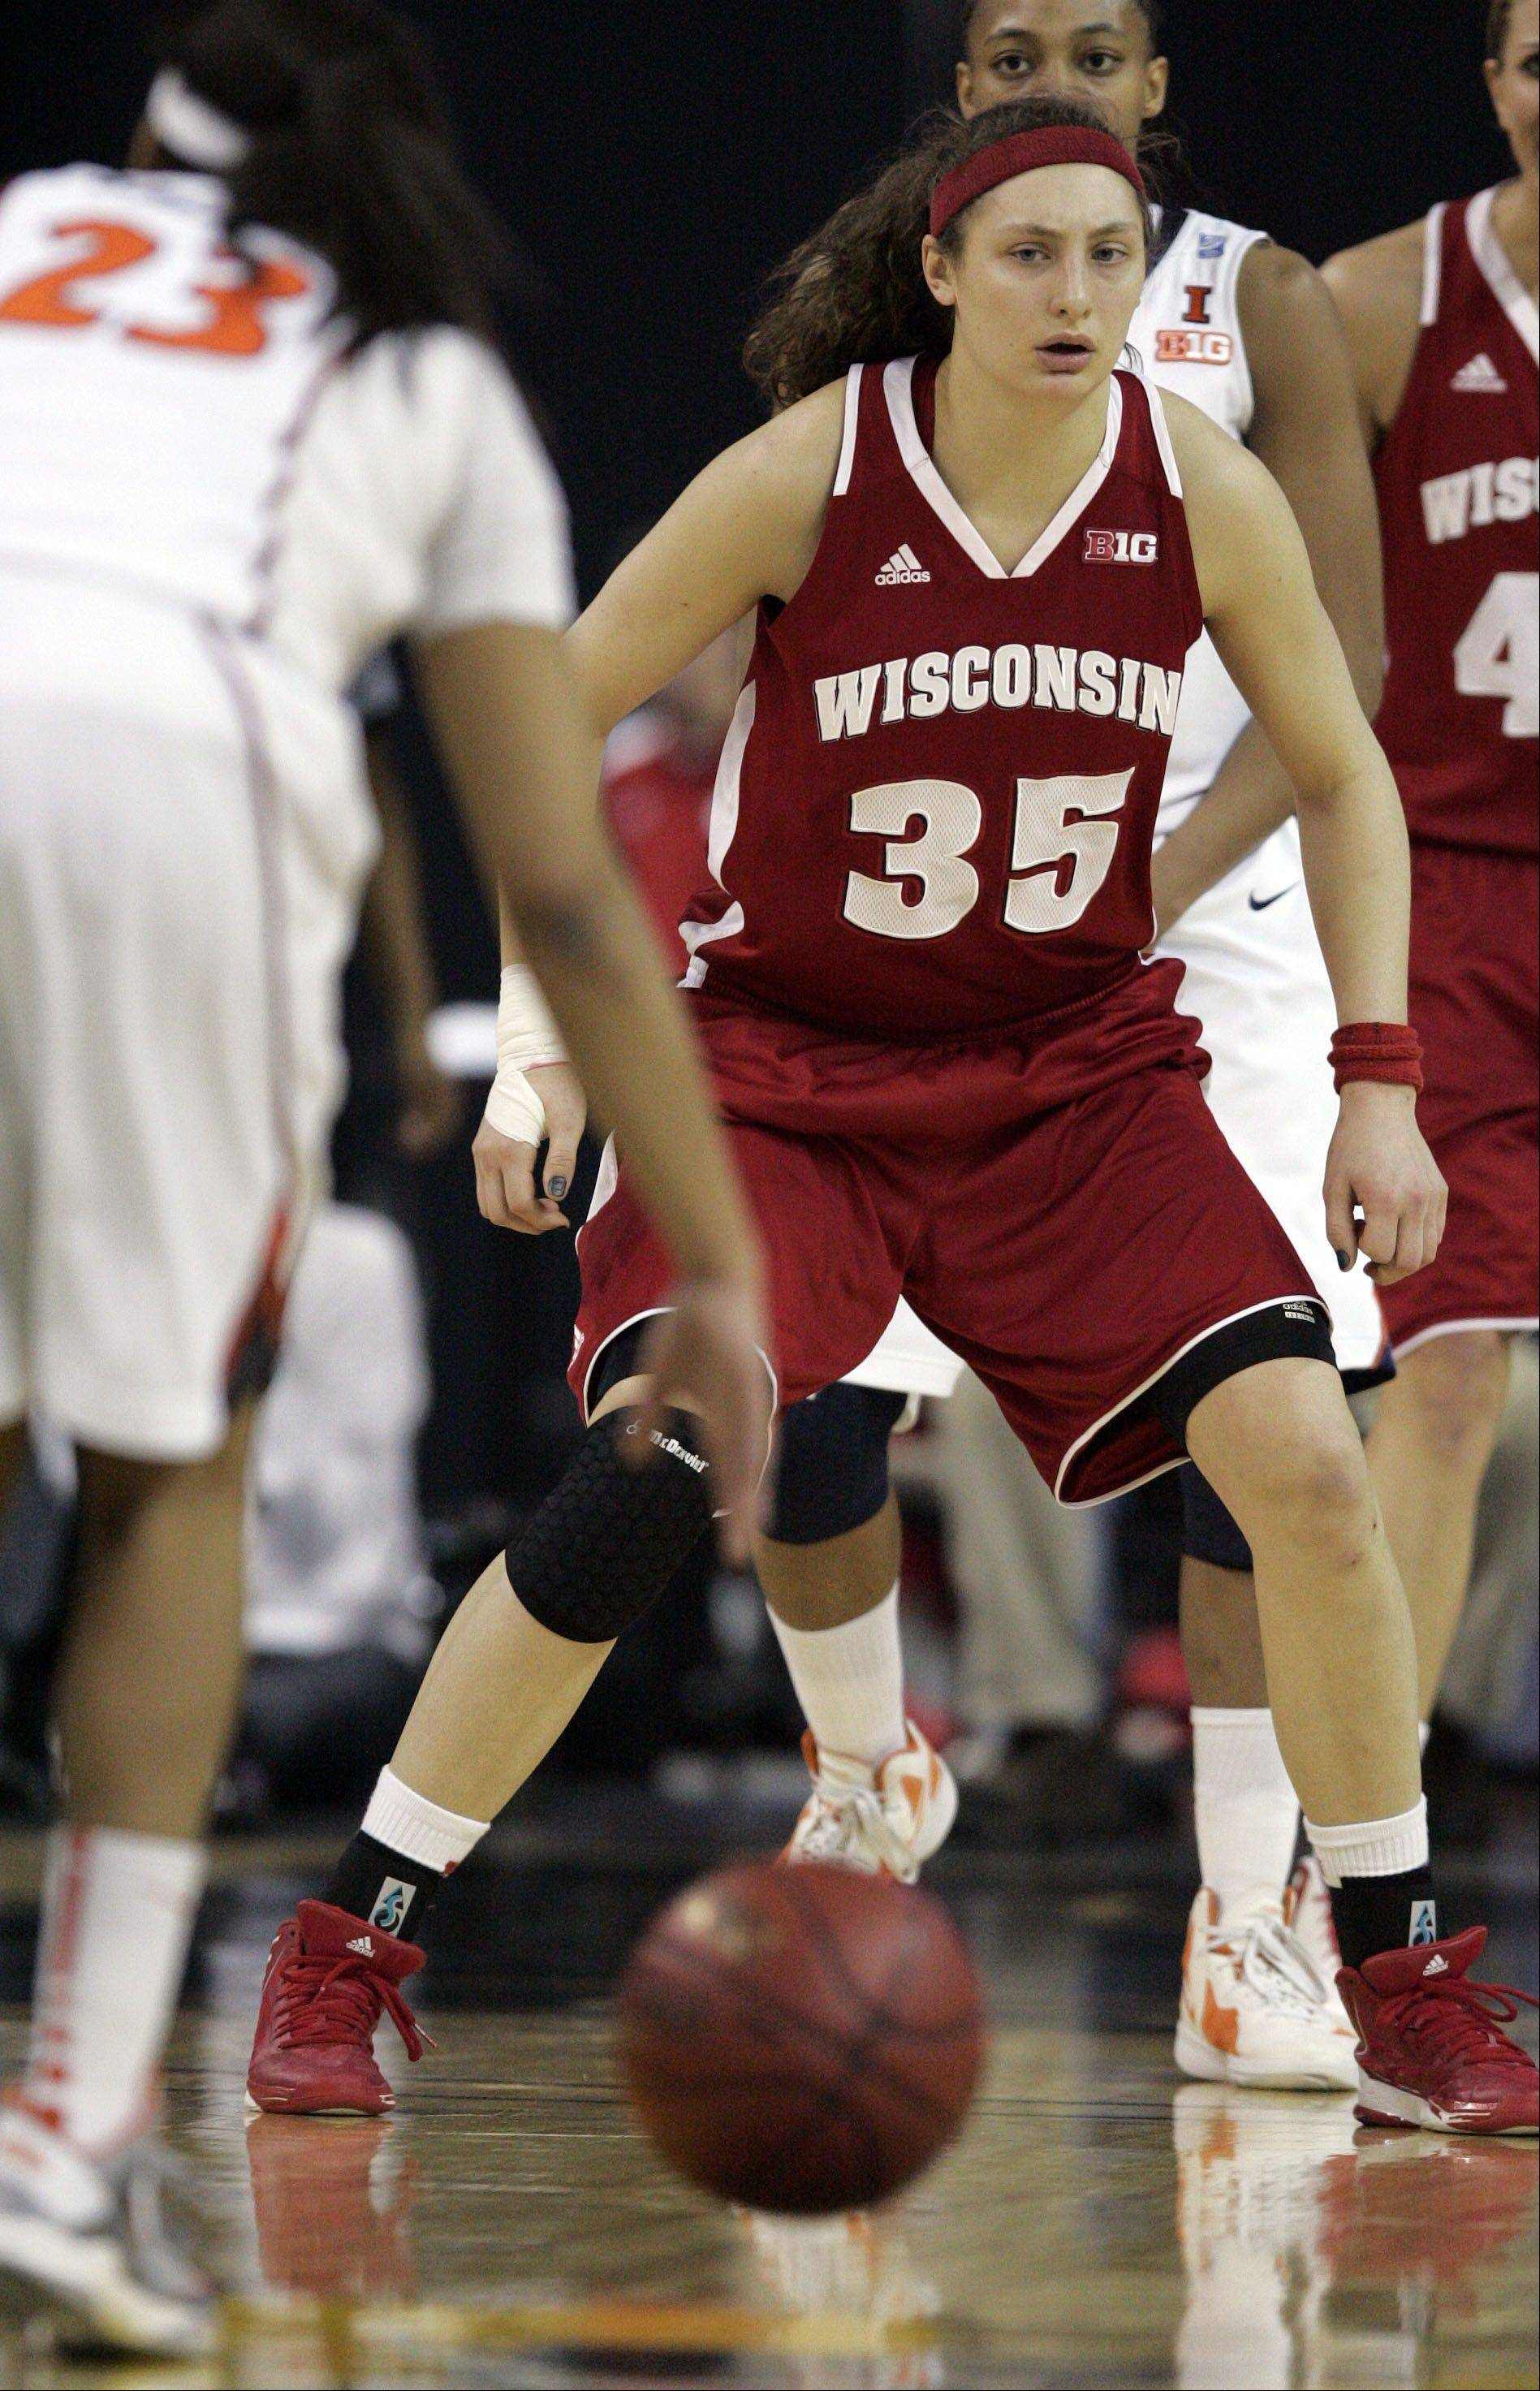 Wisconsin Badgers forward Jacki Gulczynski (35) keeps an eye on the ball during action Thursday at the Big Ten Women's Basketball Tournament at the Sears Centre in Hoffman Estates. Wisconsin advanced with a 58-57 win.